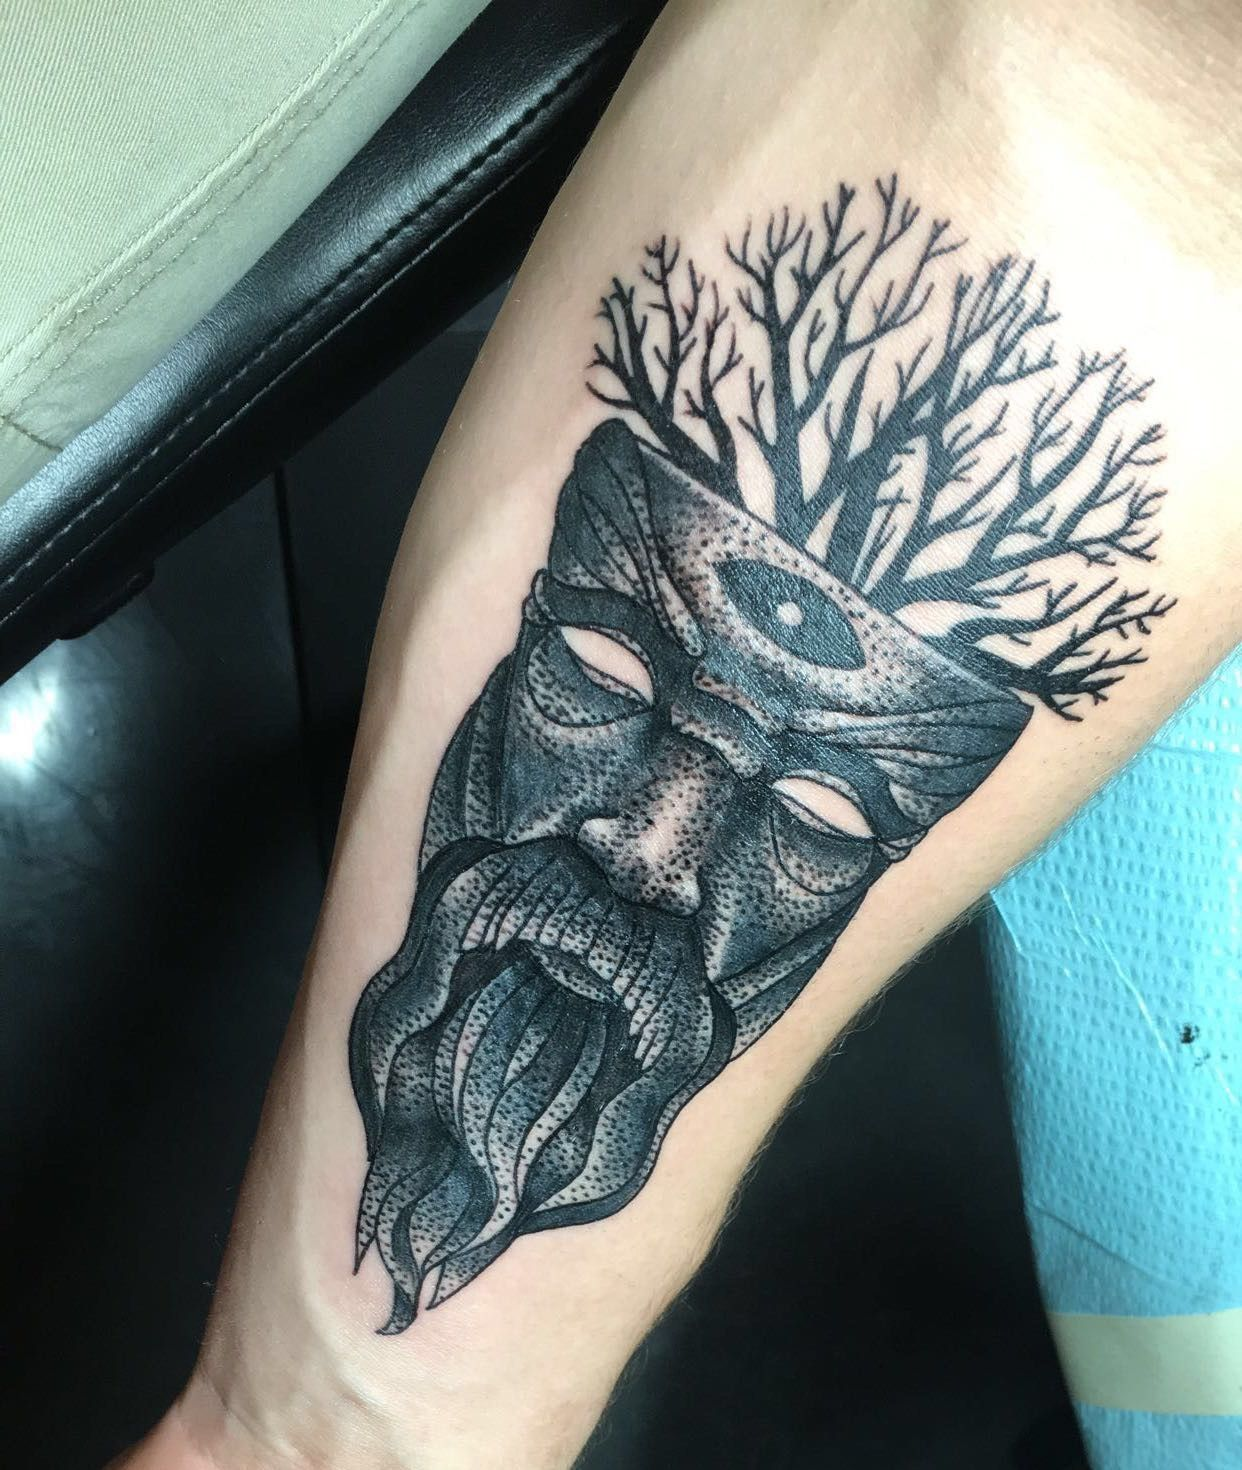 Forearm tattoo by michael barber out of best ink